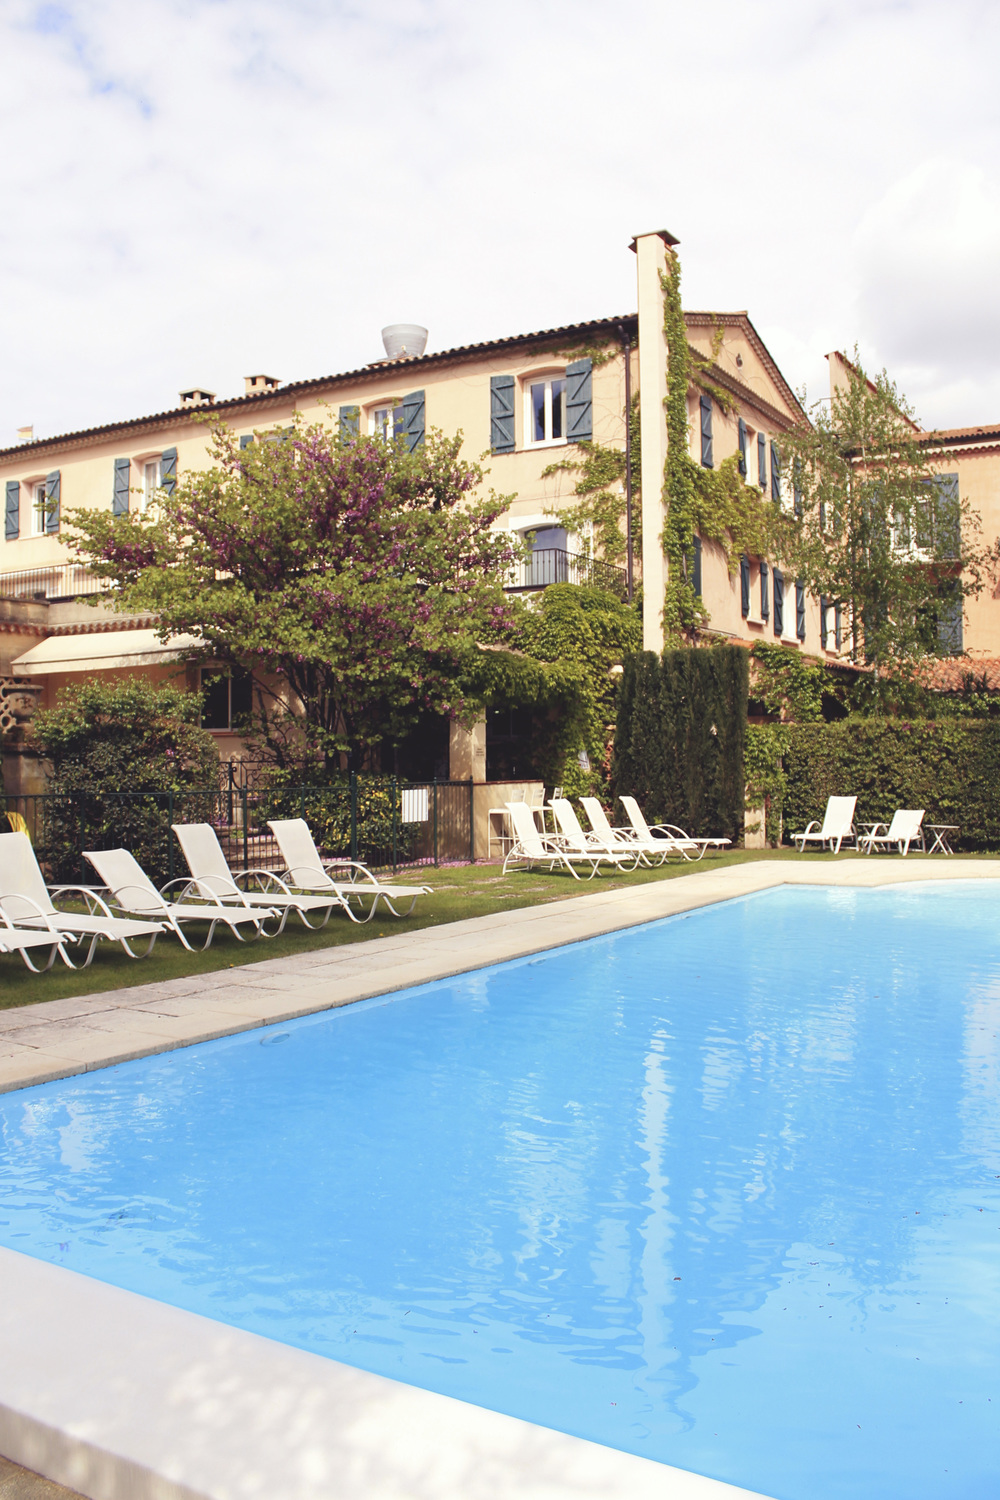 pool hotel pigonnet aix en provence spring april france